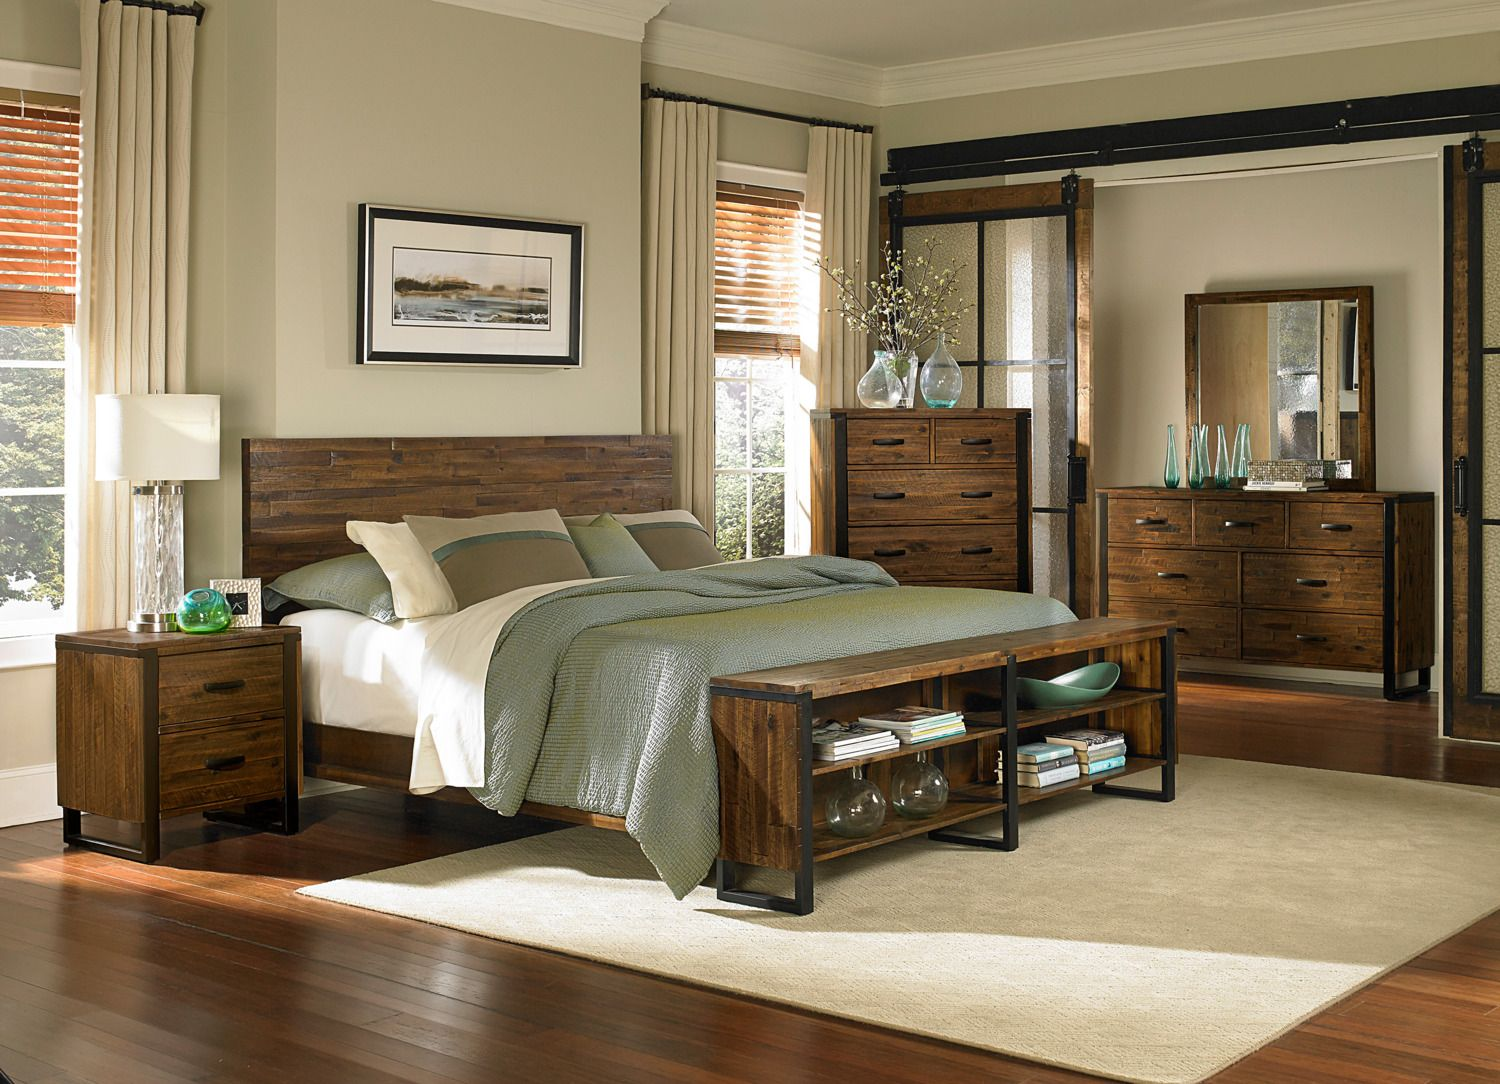 The Rainier Collection  Levin Furniture  Furniture, Panel bed